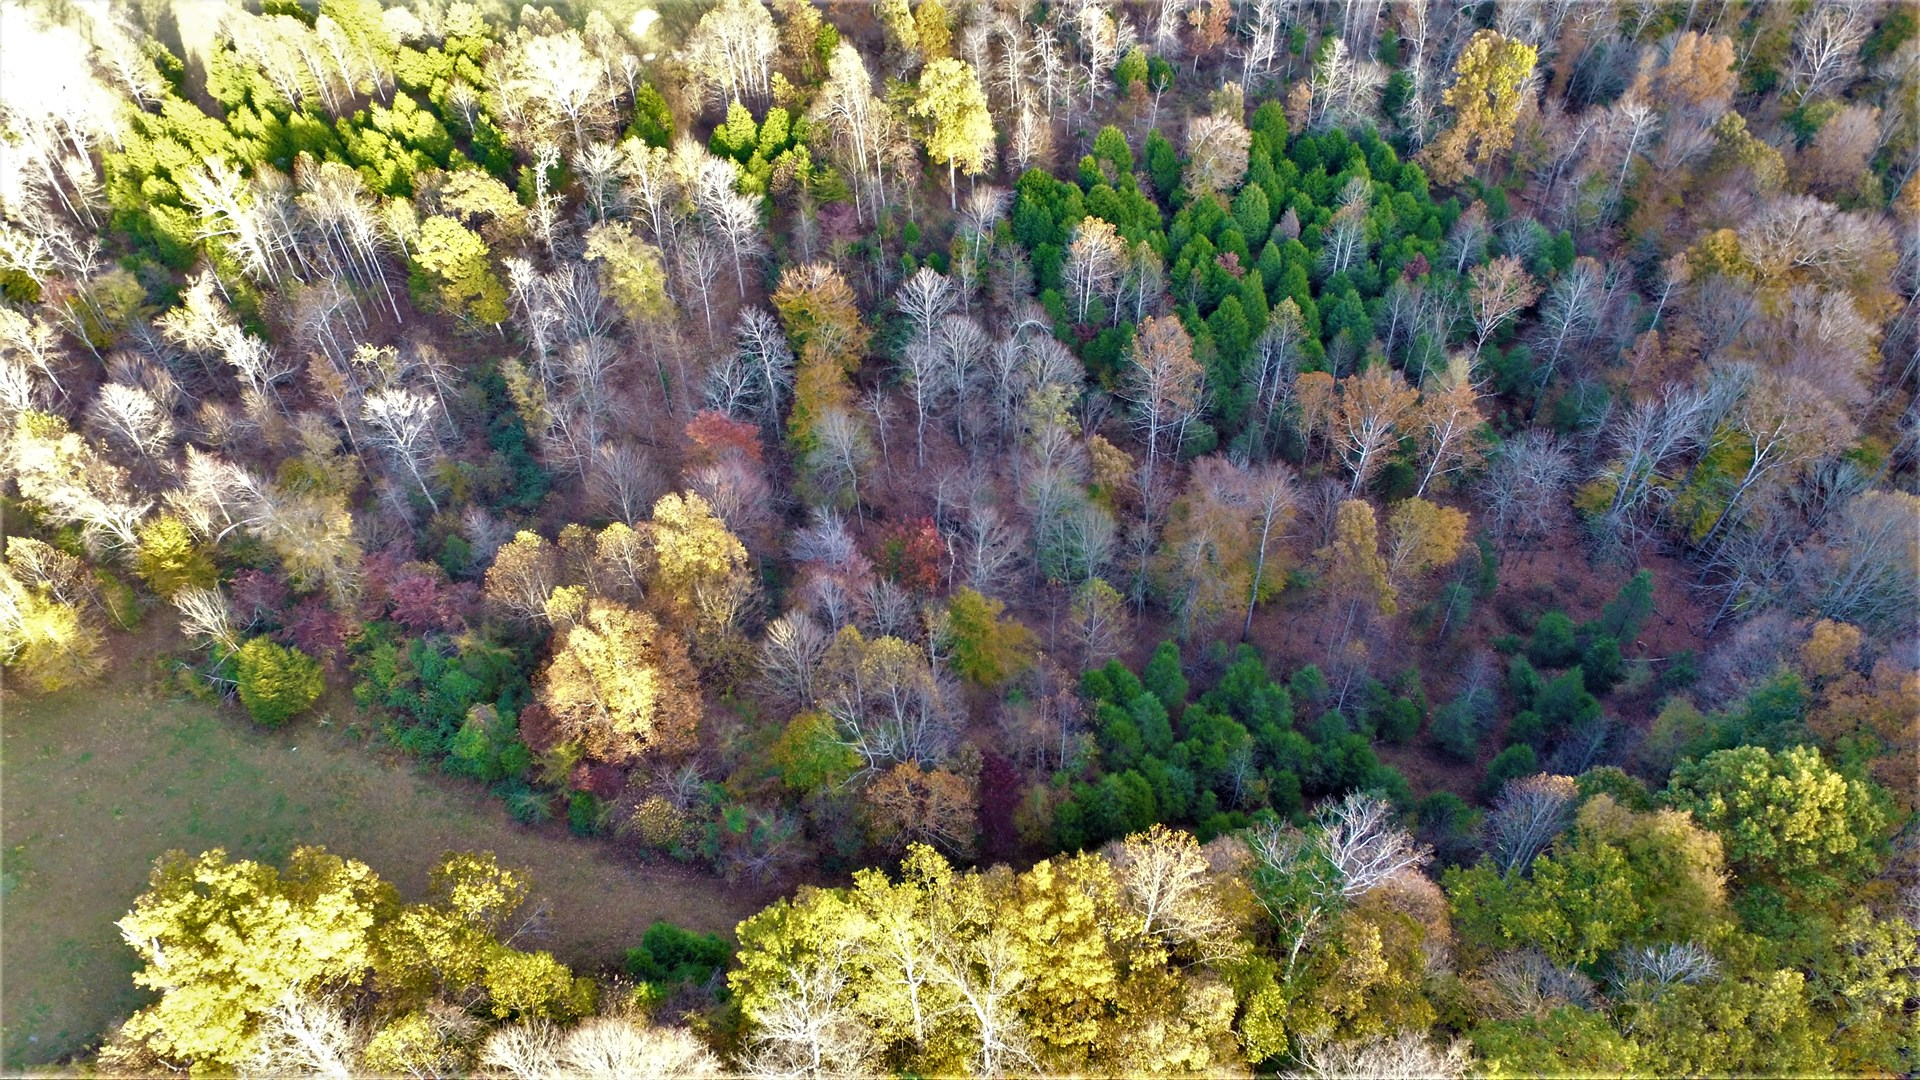 95 1/2 Acres Metcalfe County, House, Hunting Paradise